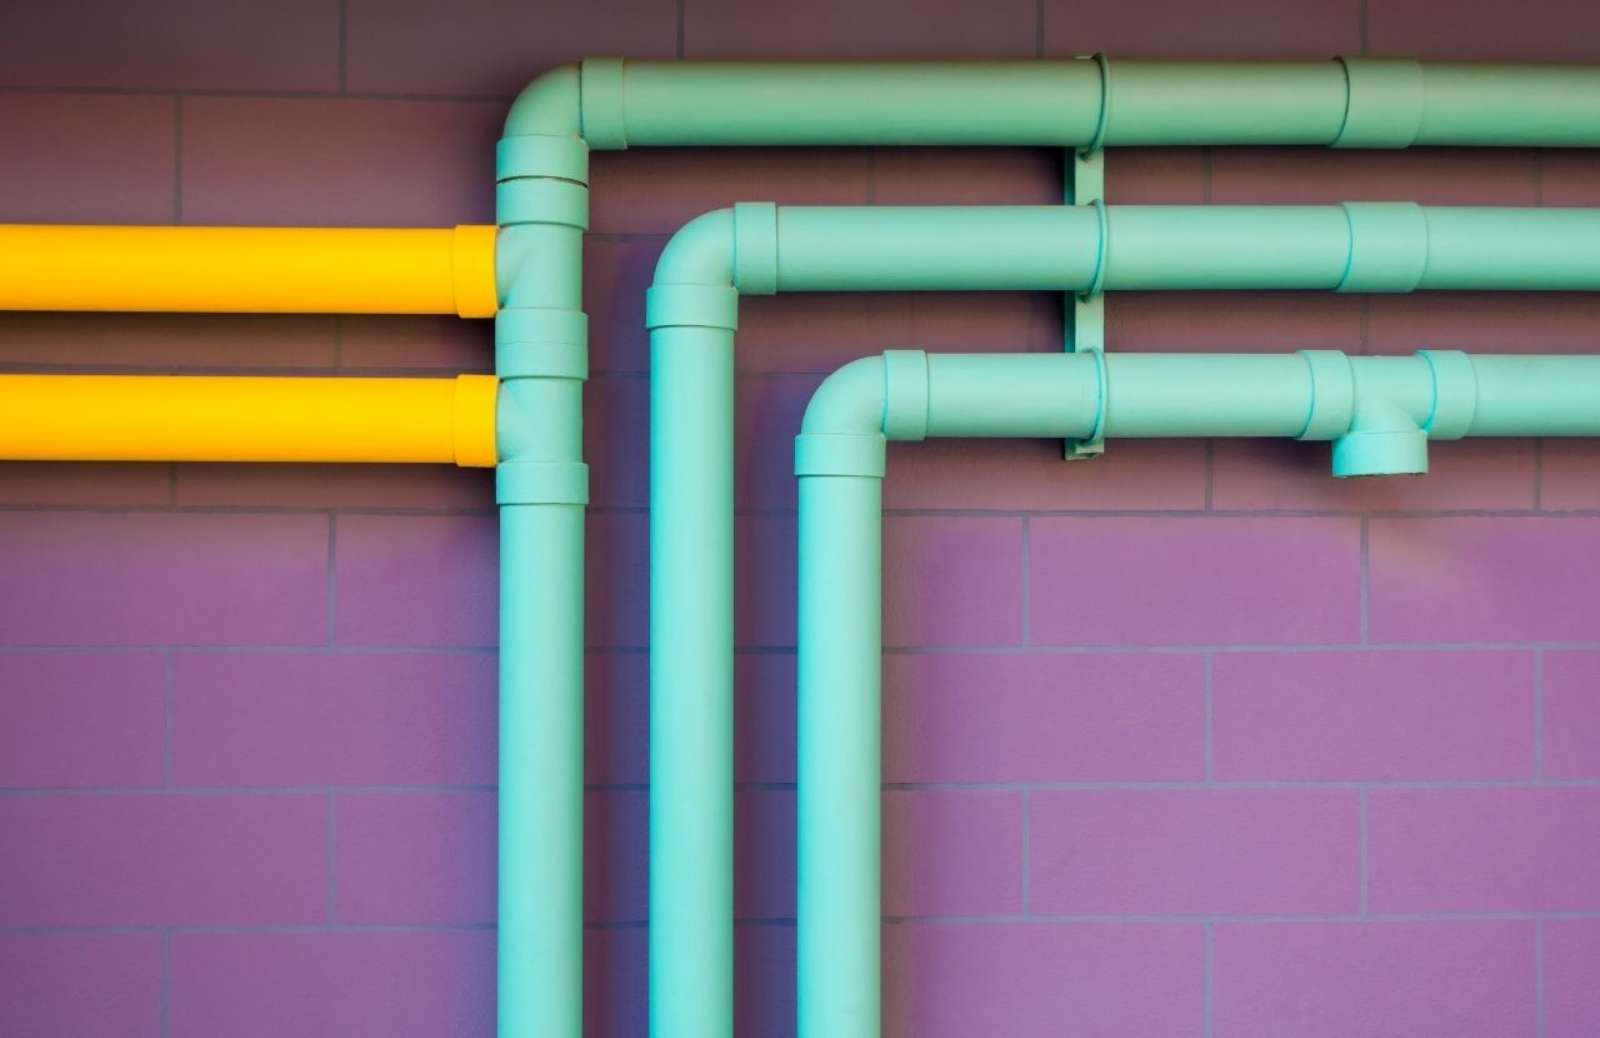 Teal and yellow pipelines against purple brick wall